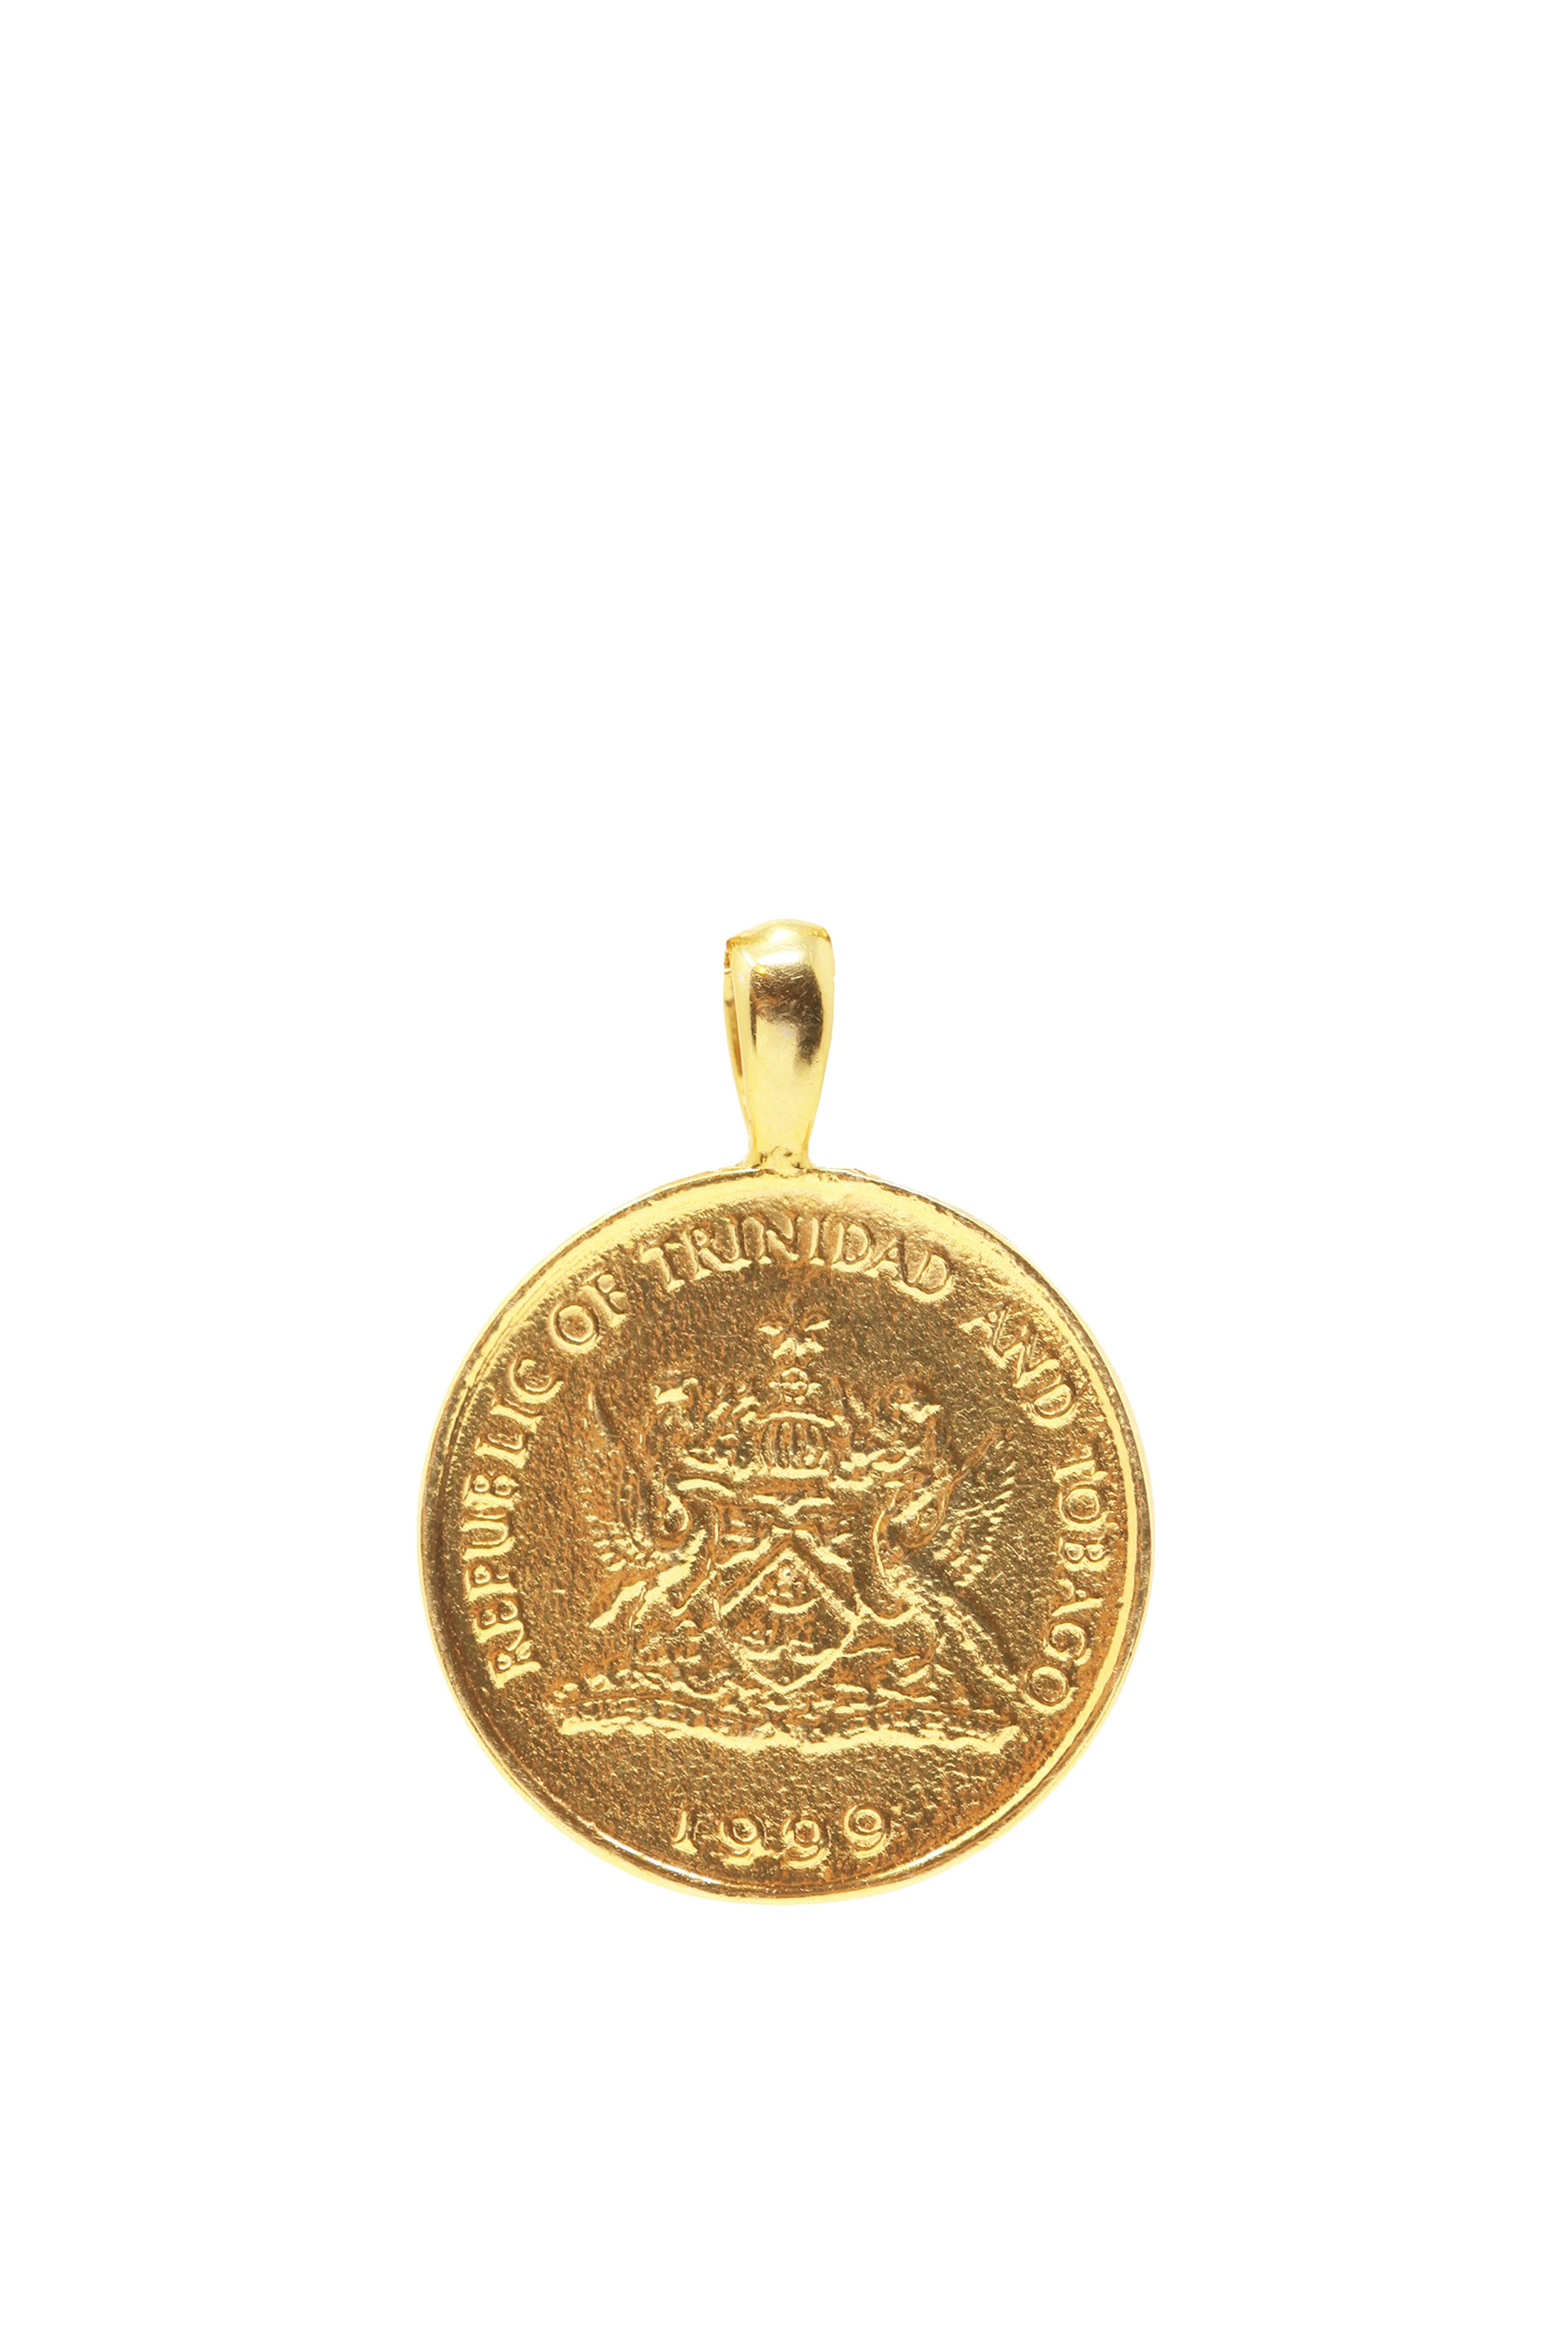 THE TRINIDAD and Tobago Hummingbird Coin Pendant